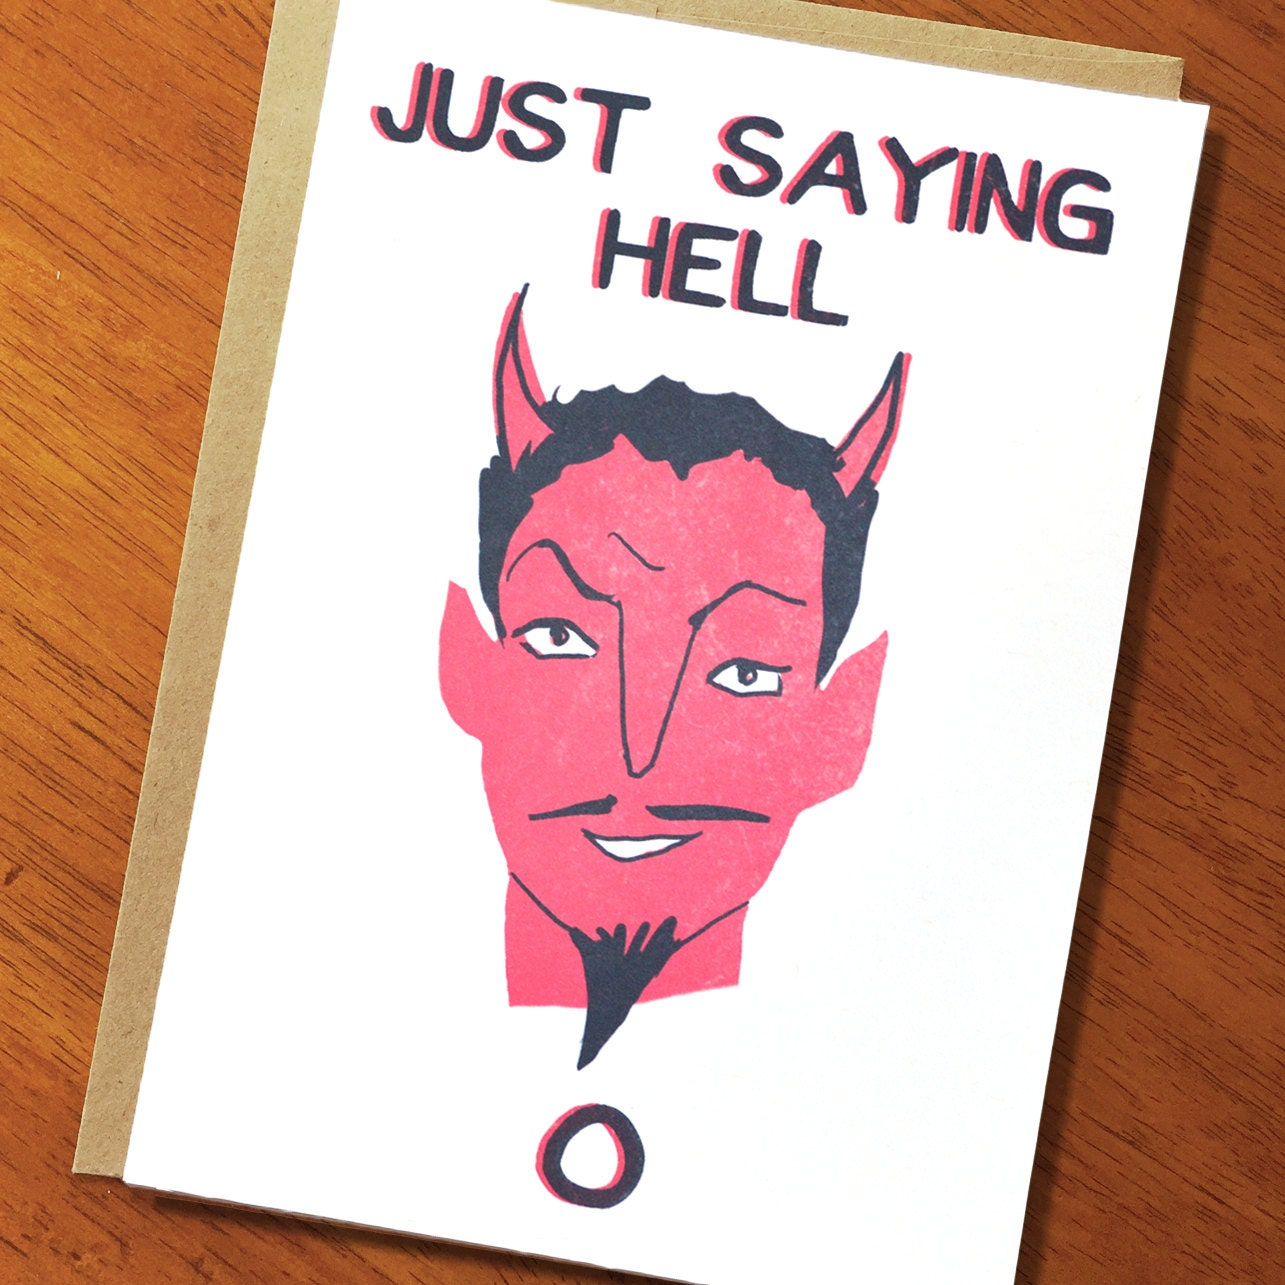 Funny Devil Card Just Saying Hell O Funny Greeting Card Etsy